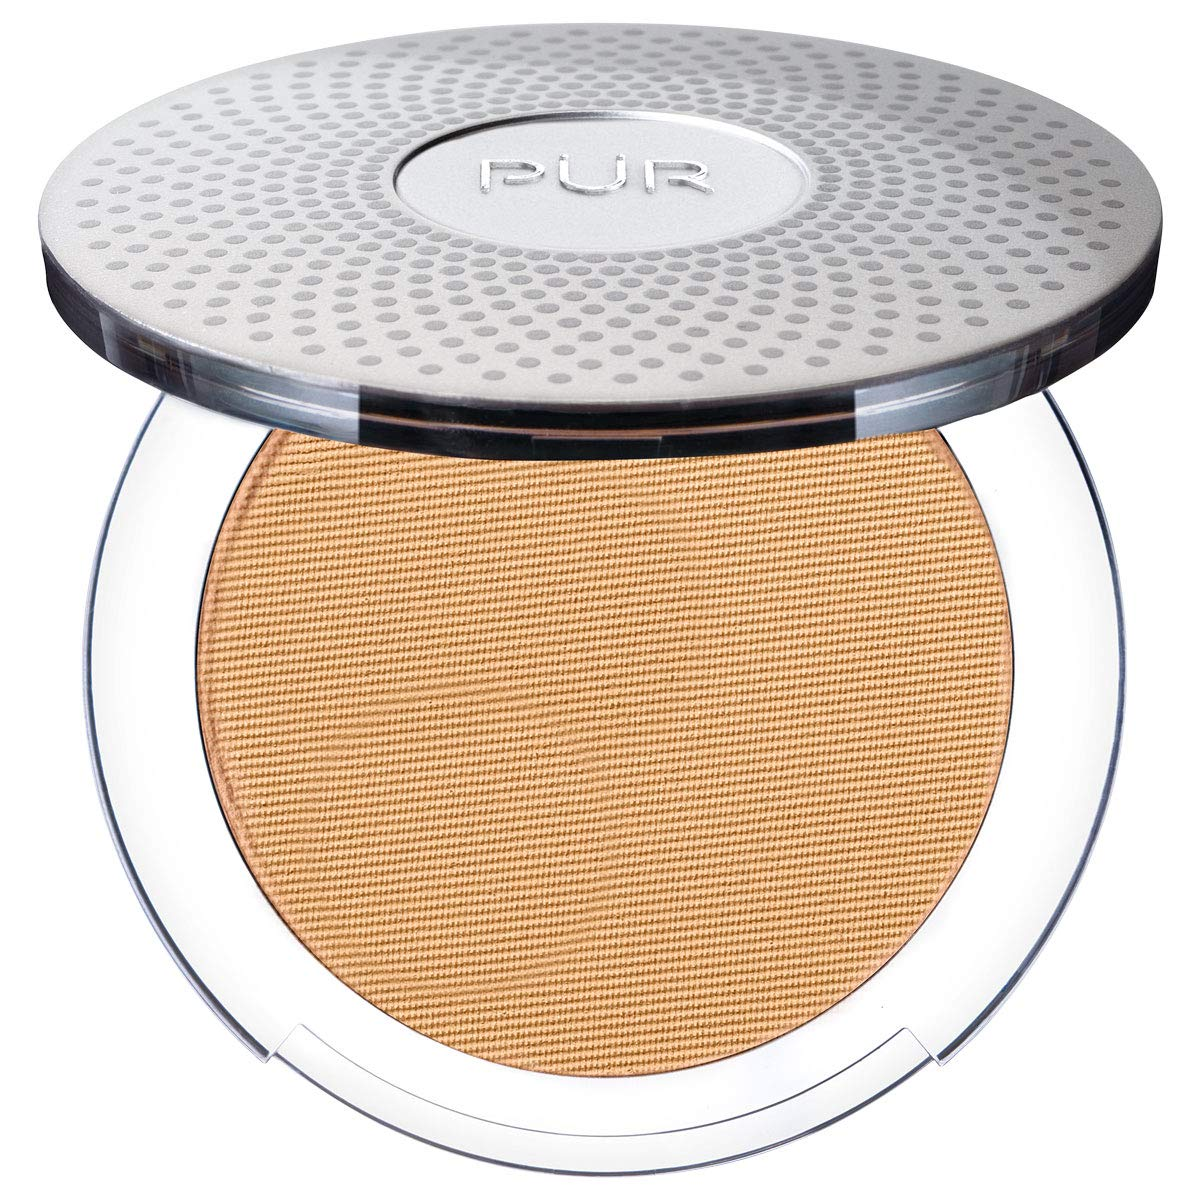 PÃœR 4-in-1 Pressed Mineral Makeup with Skincare Ingredients in Beige/MG5, 0.28 Ounce